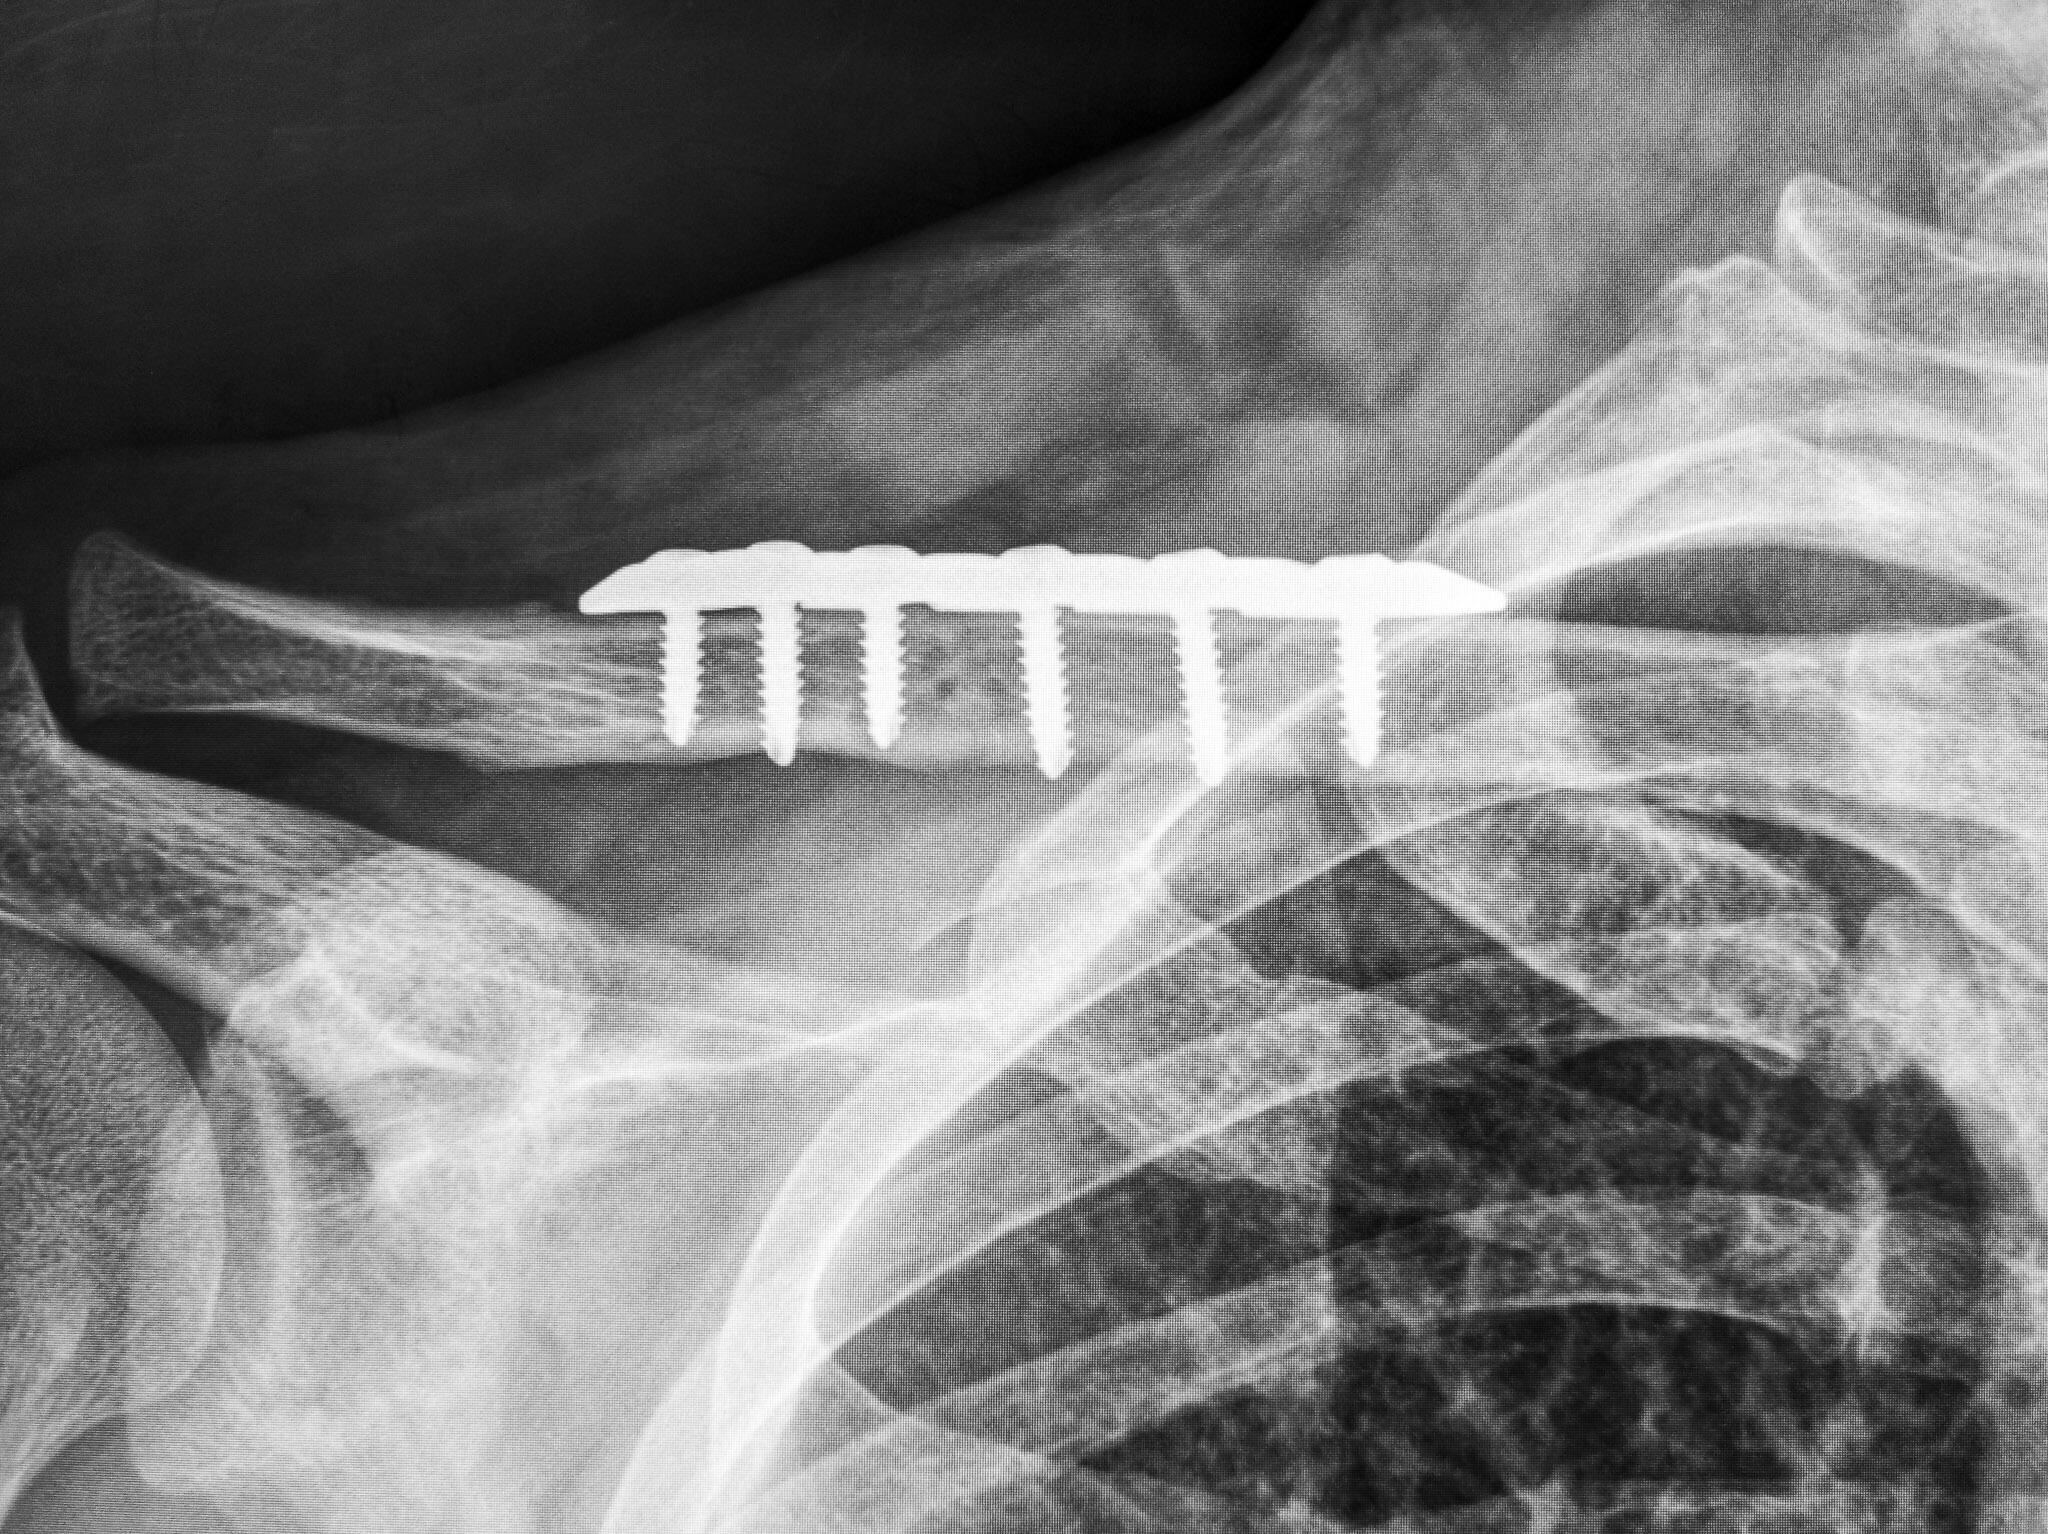 <p>Doctors repaired my collarbone with the stainless steel plate shown in this X-ray image.</p>